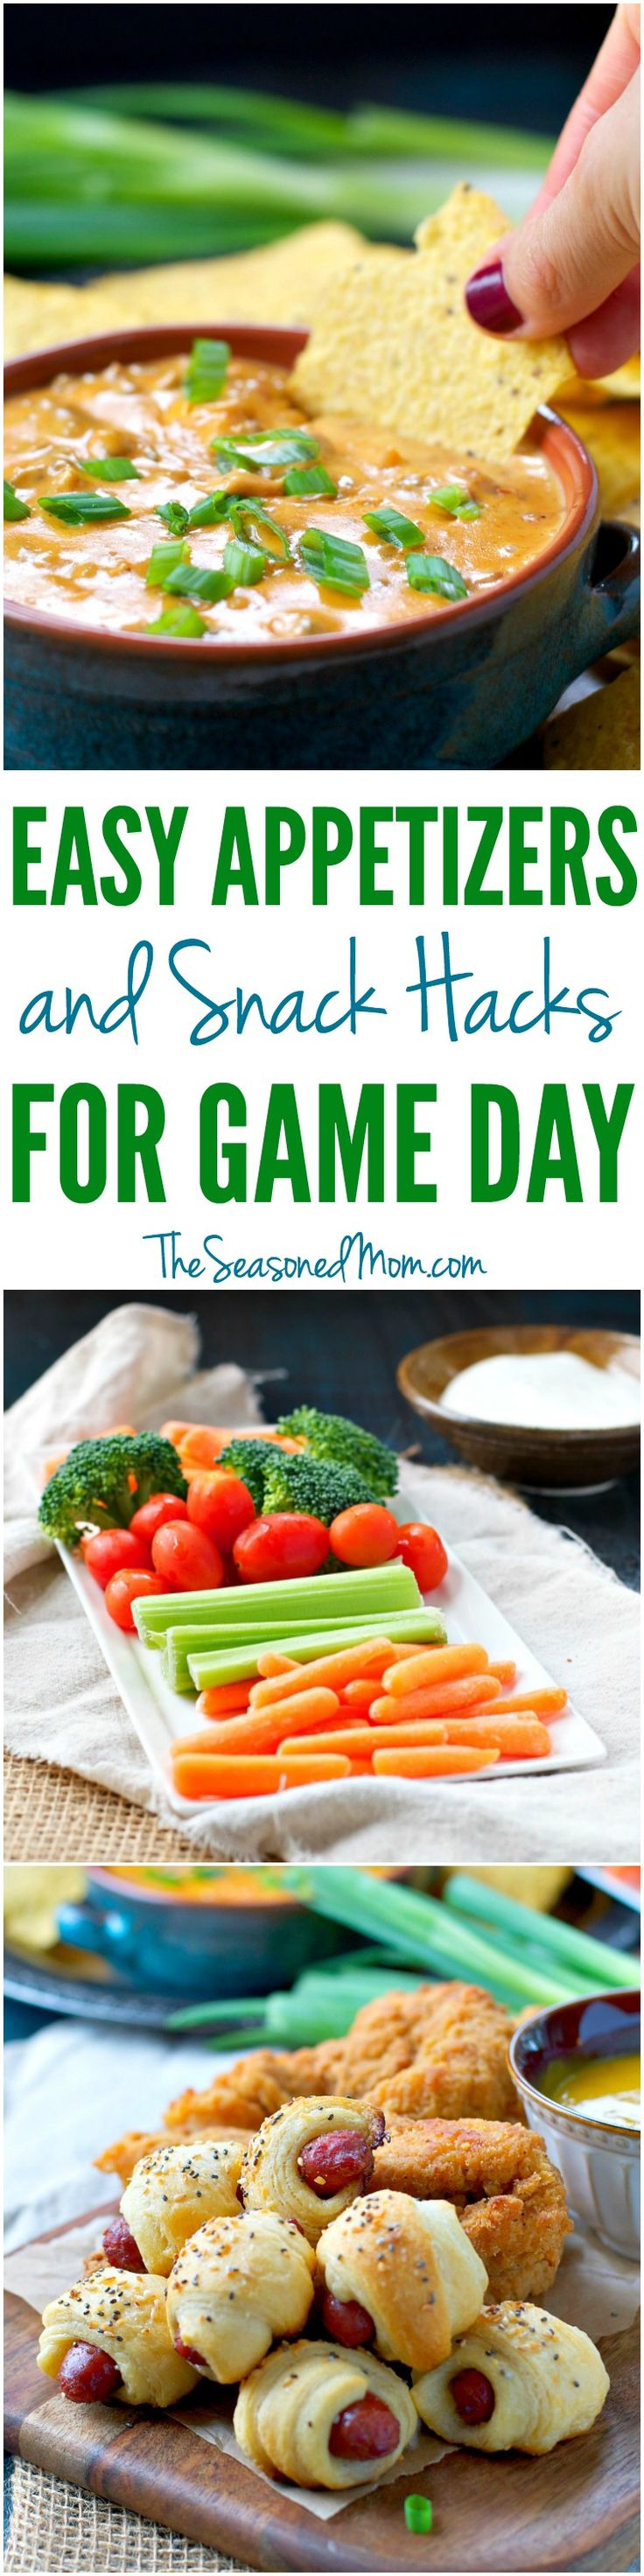 Easy Appetizers & Snack Hacks That Are Perfect For Game Day With @TysonFoods @Walmart #GameDay #TabletopTailgate #ad